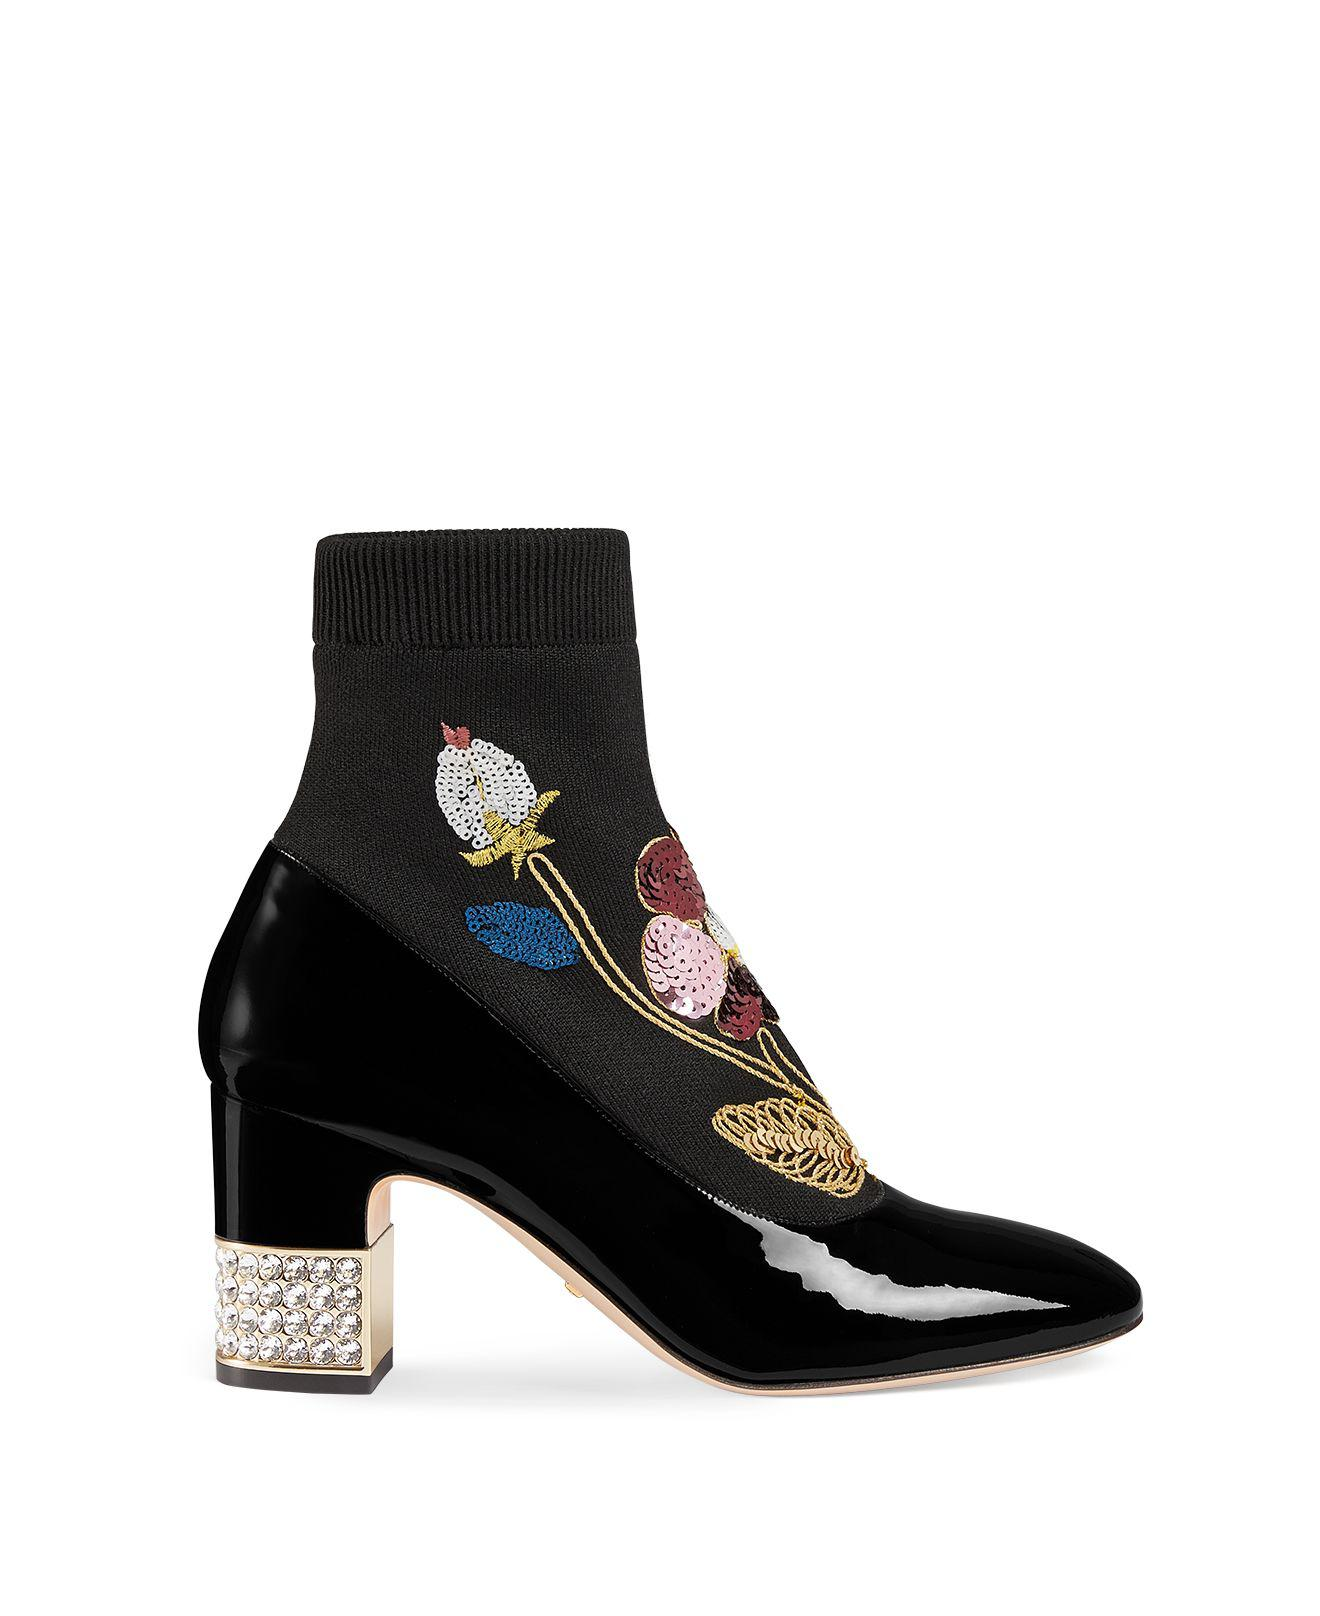 d0b8c2e63 Lyst - Gucci Women's Candy Embroidered Knit & Patent Leather ...